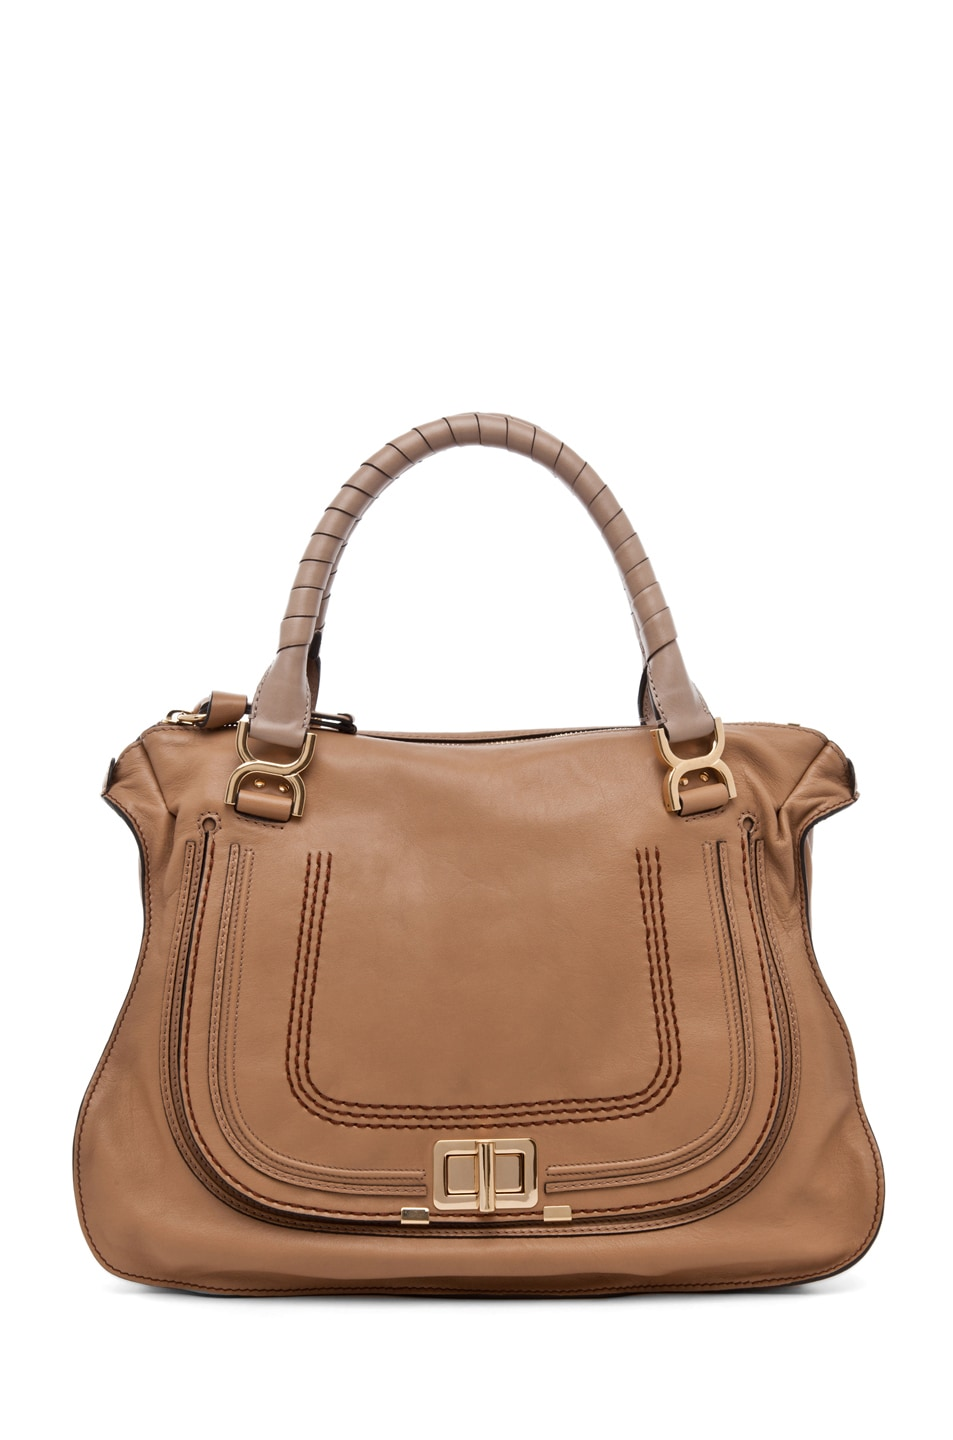 Image 1 of Chloe Large Marcie Satchel in Andalousia Land